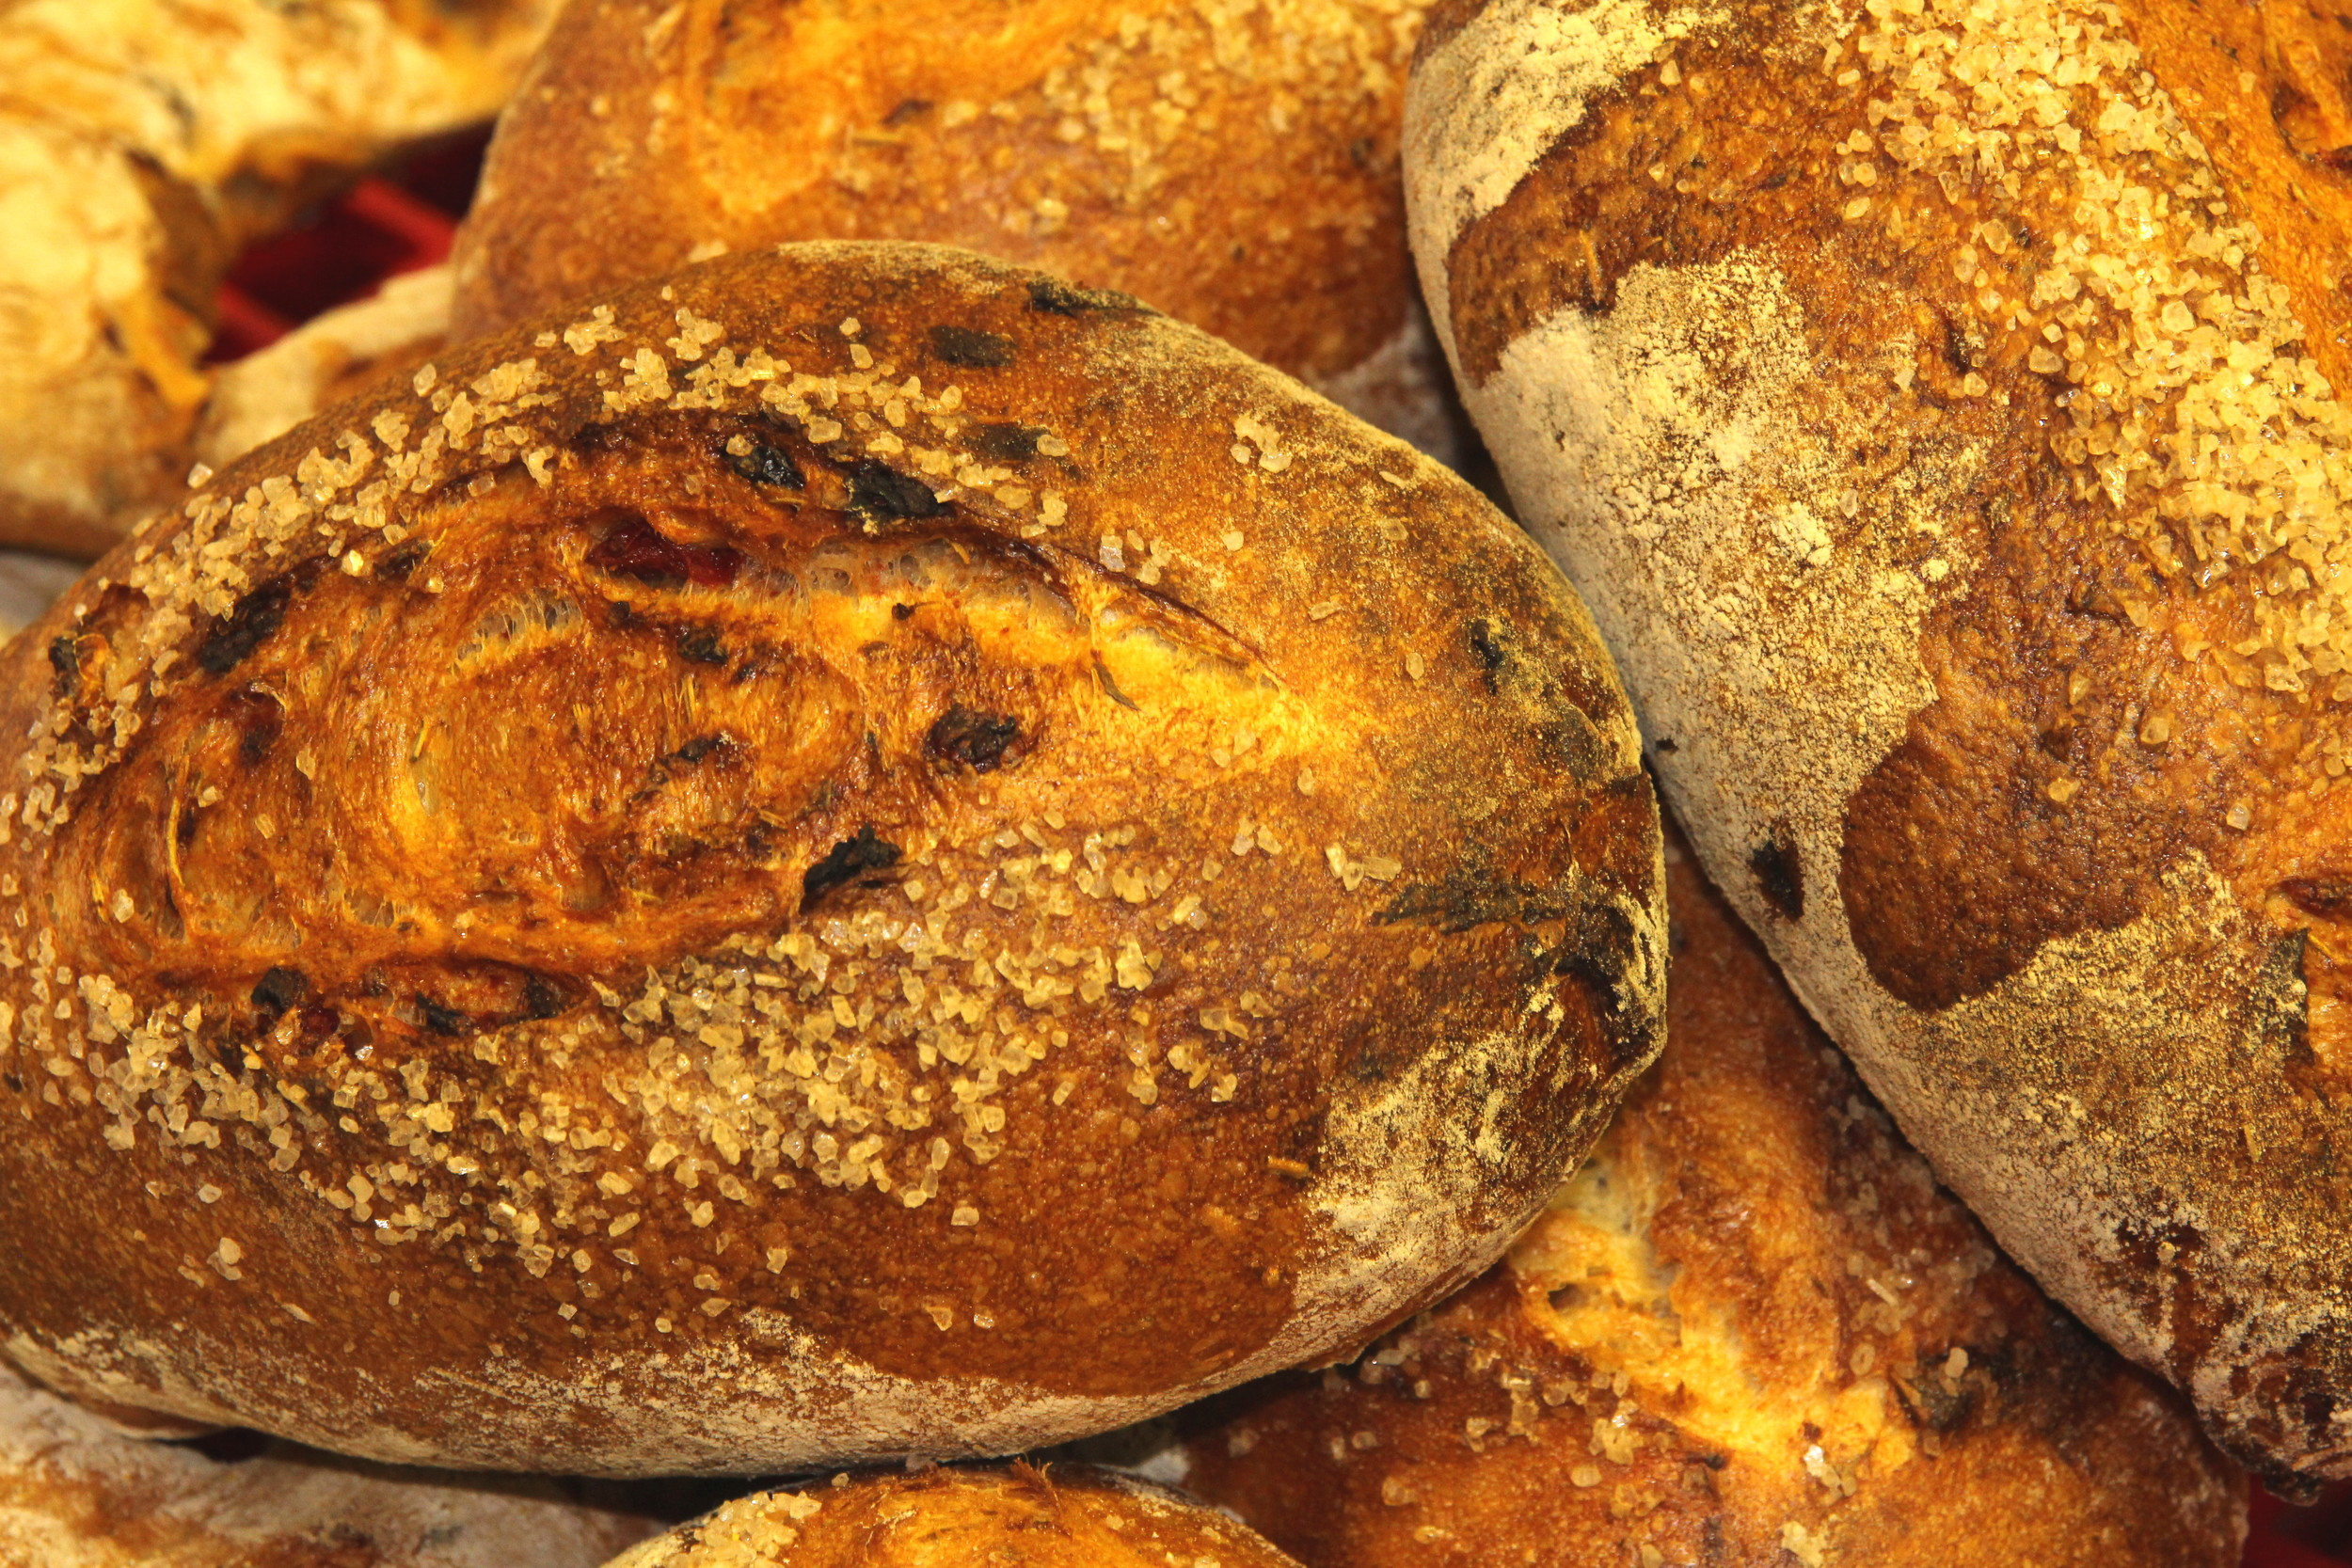 Pomodoro bread from Snohomish Bakery. Photo courtesy Snohomish Bakery.